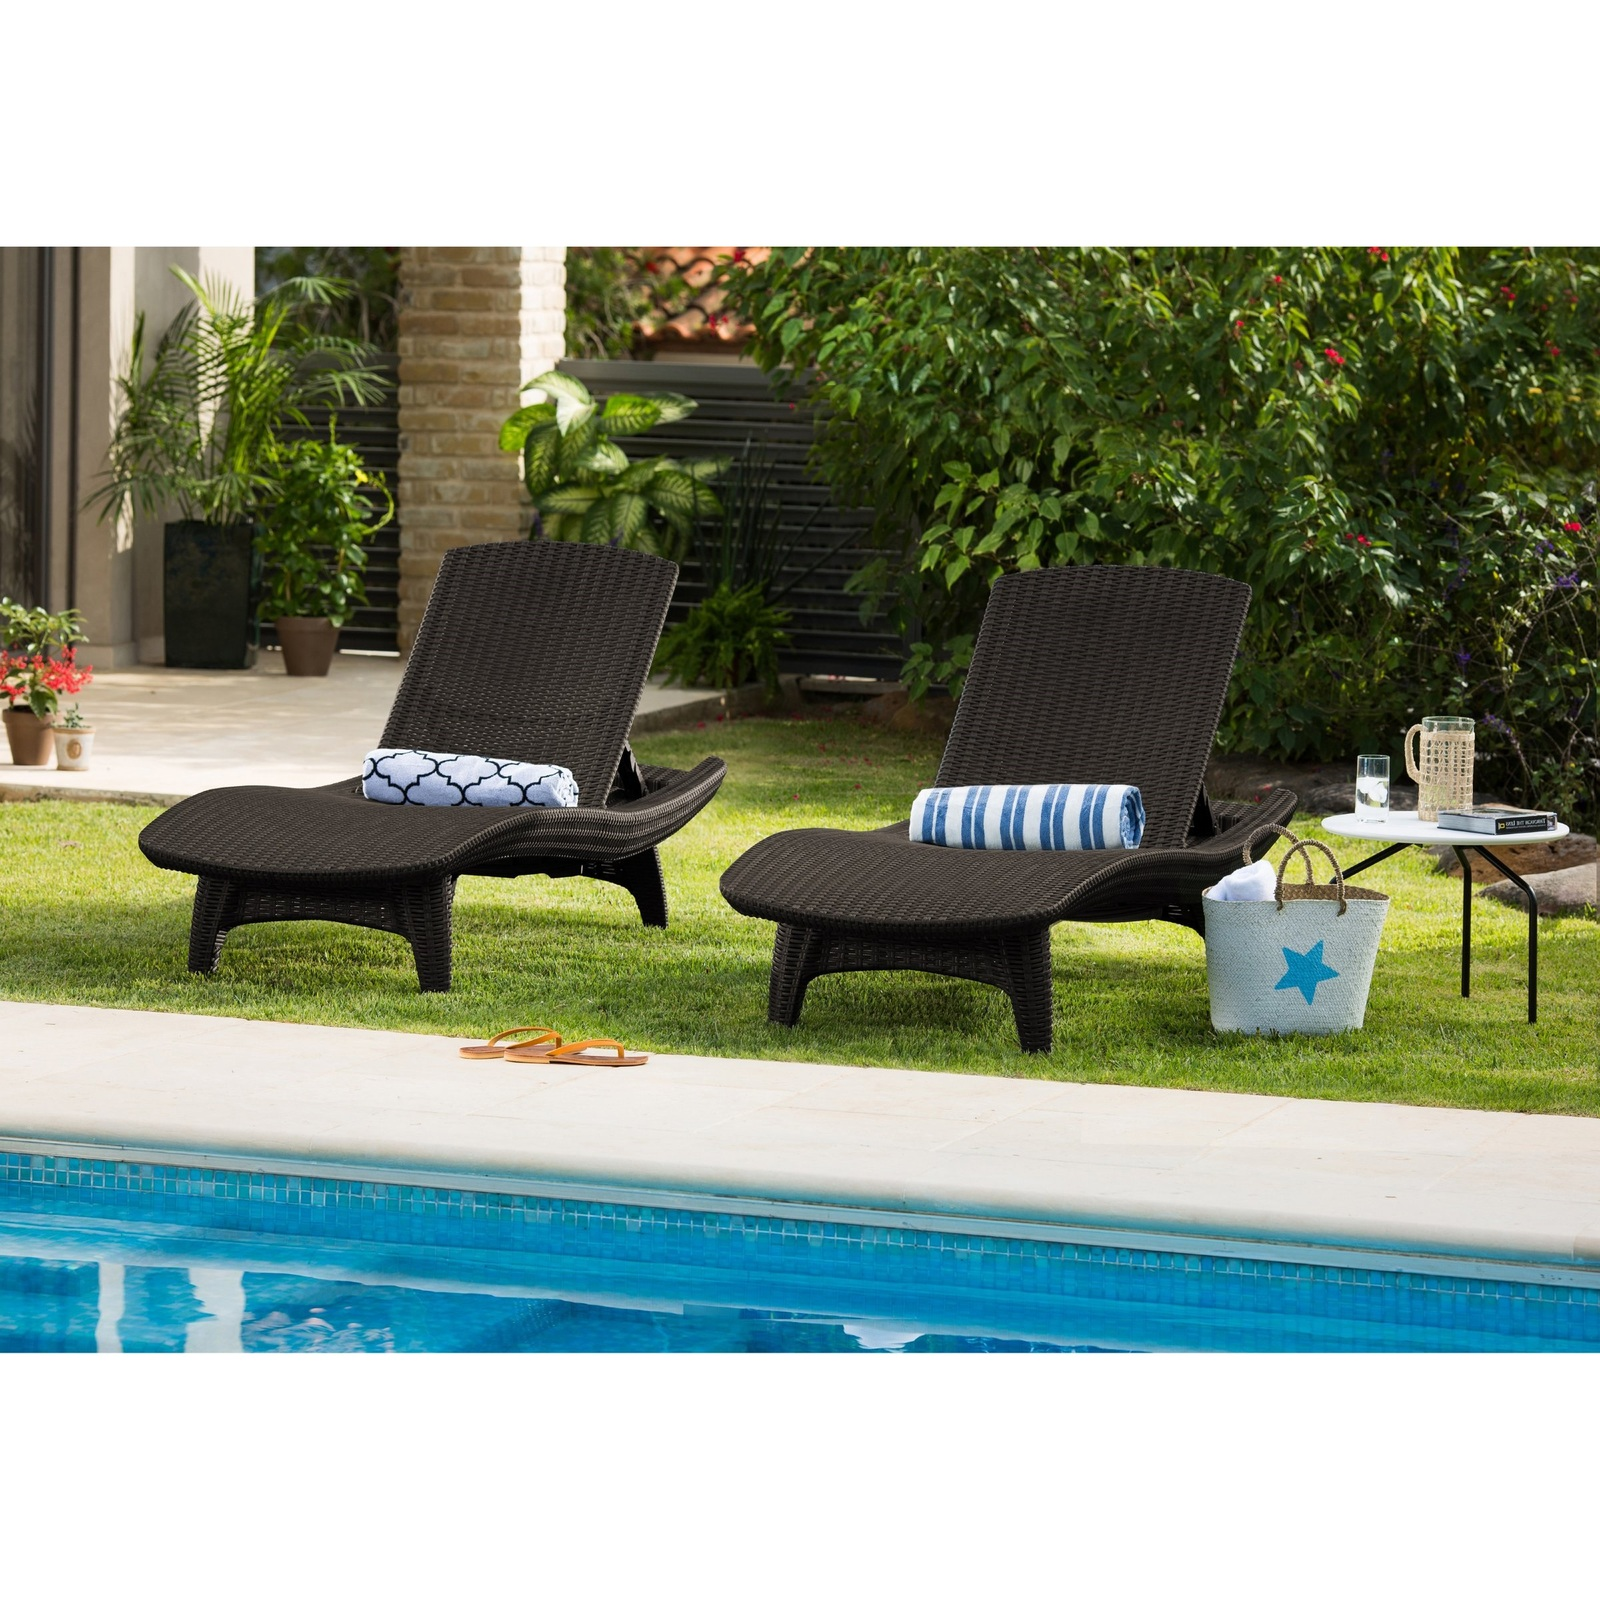 chaise lounges table set outdoor patio pool furniture 3 pc lounger brown wicker lounges. Black Bedroom Furniture Sets. Home Design Ideas